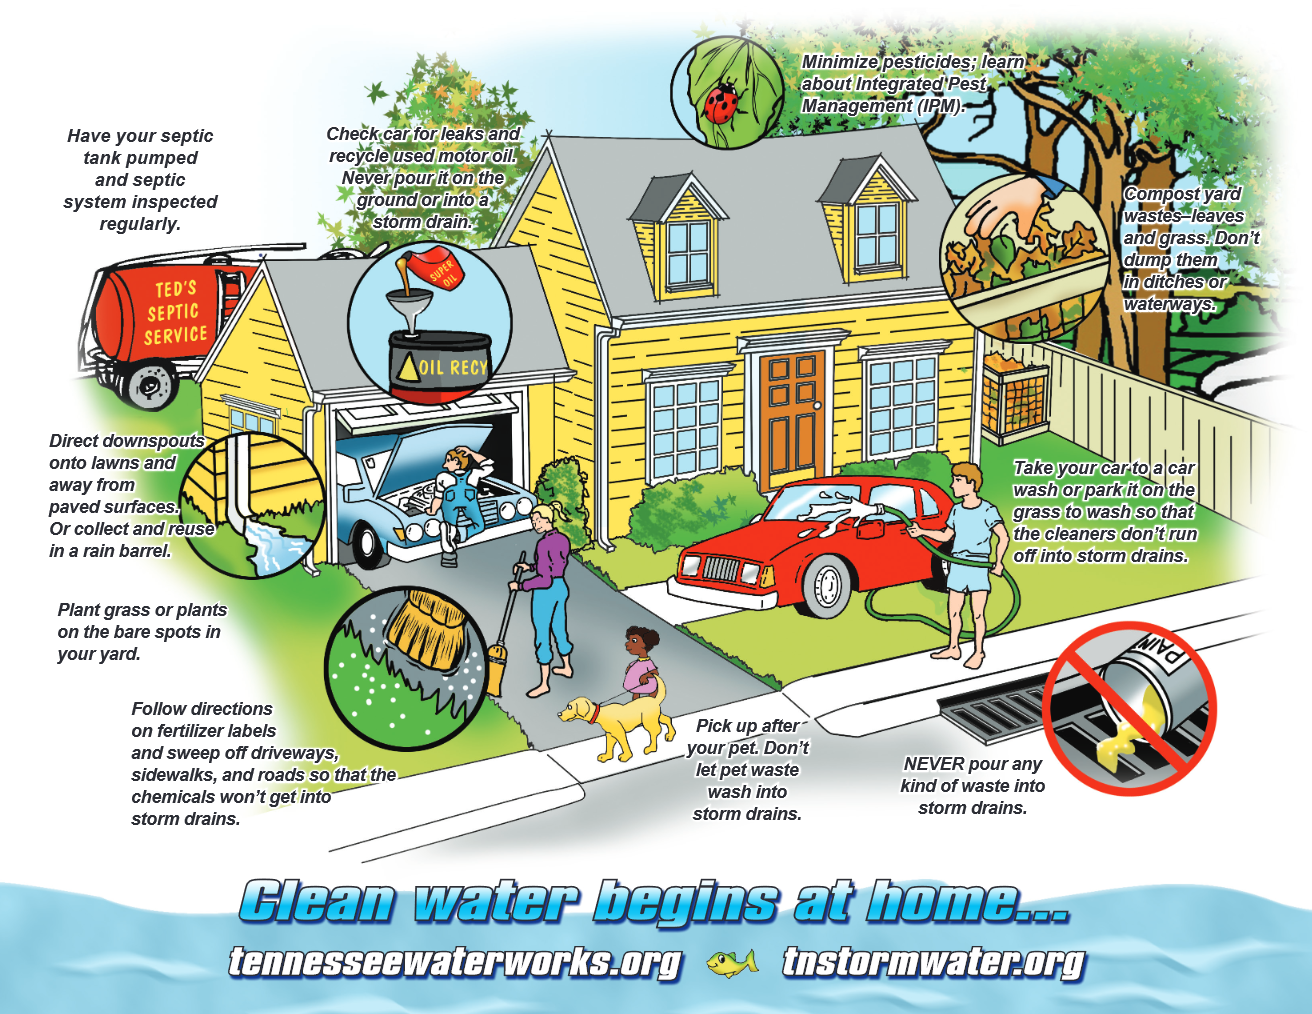 Cleaner Water Begins at Home